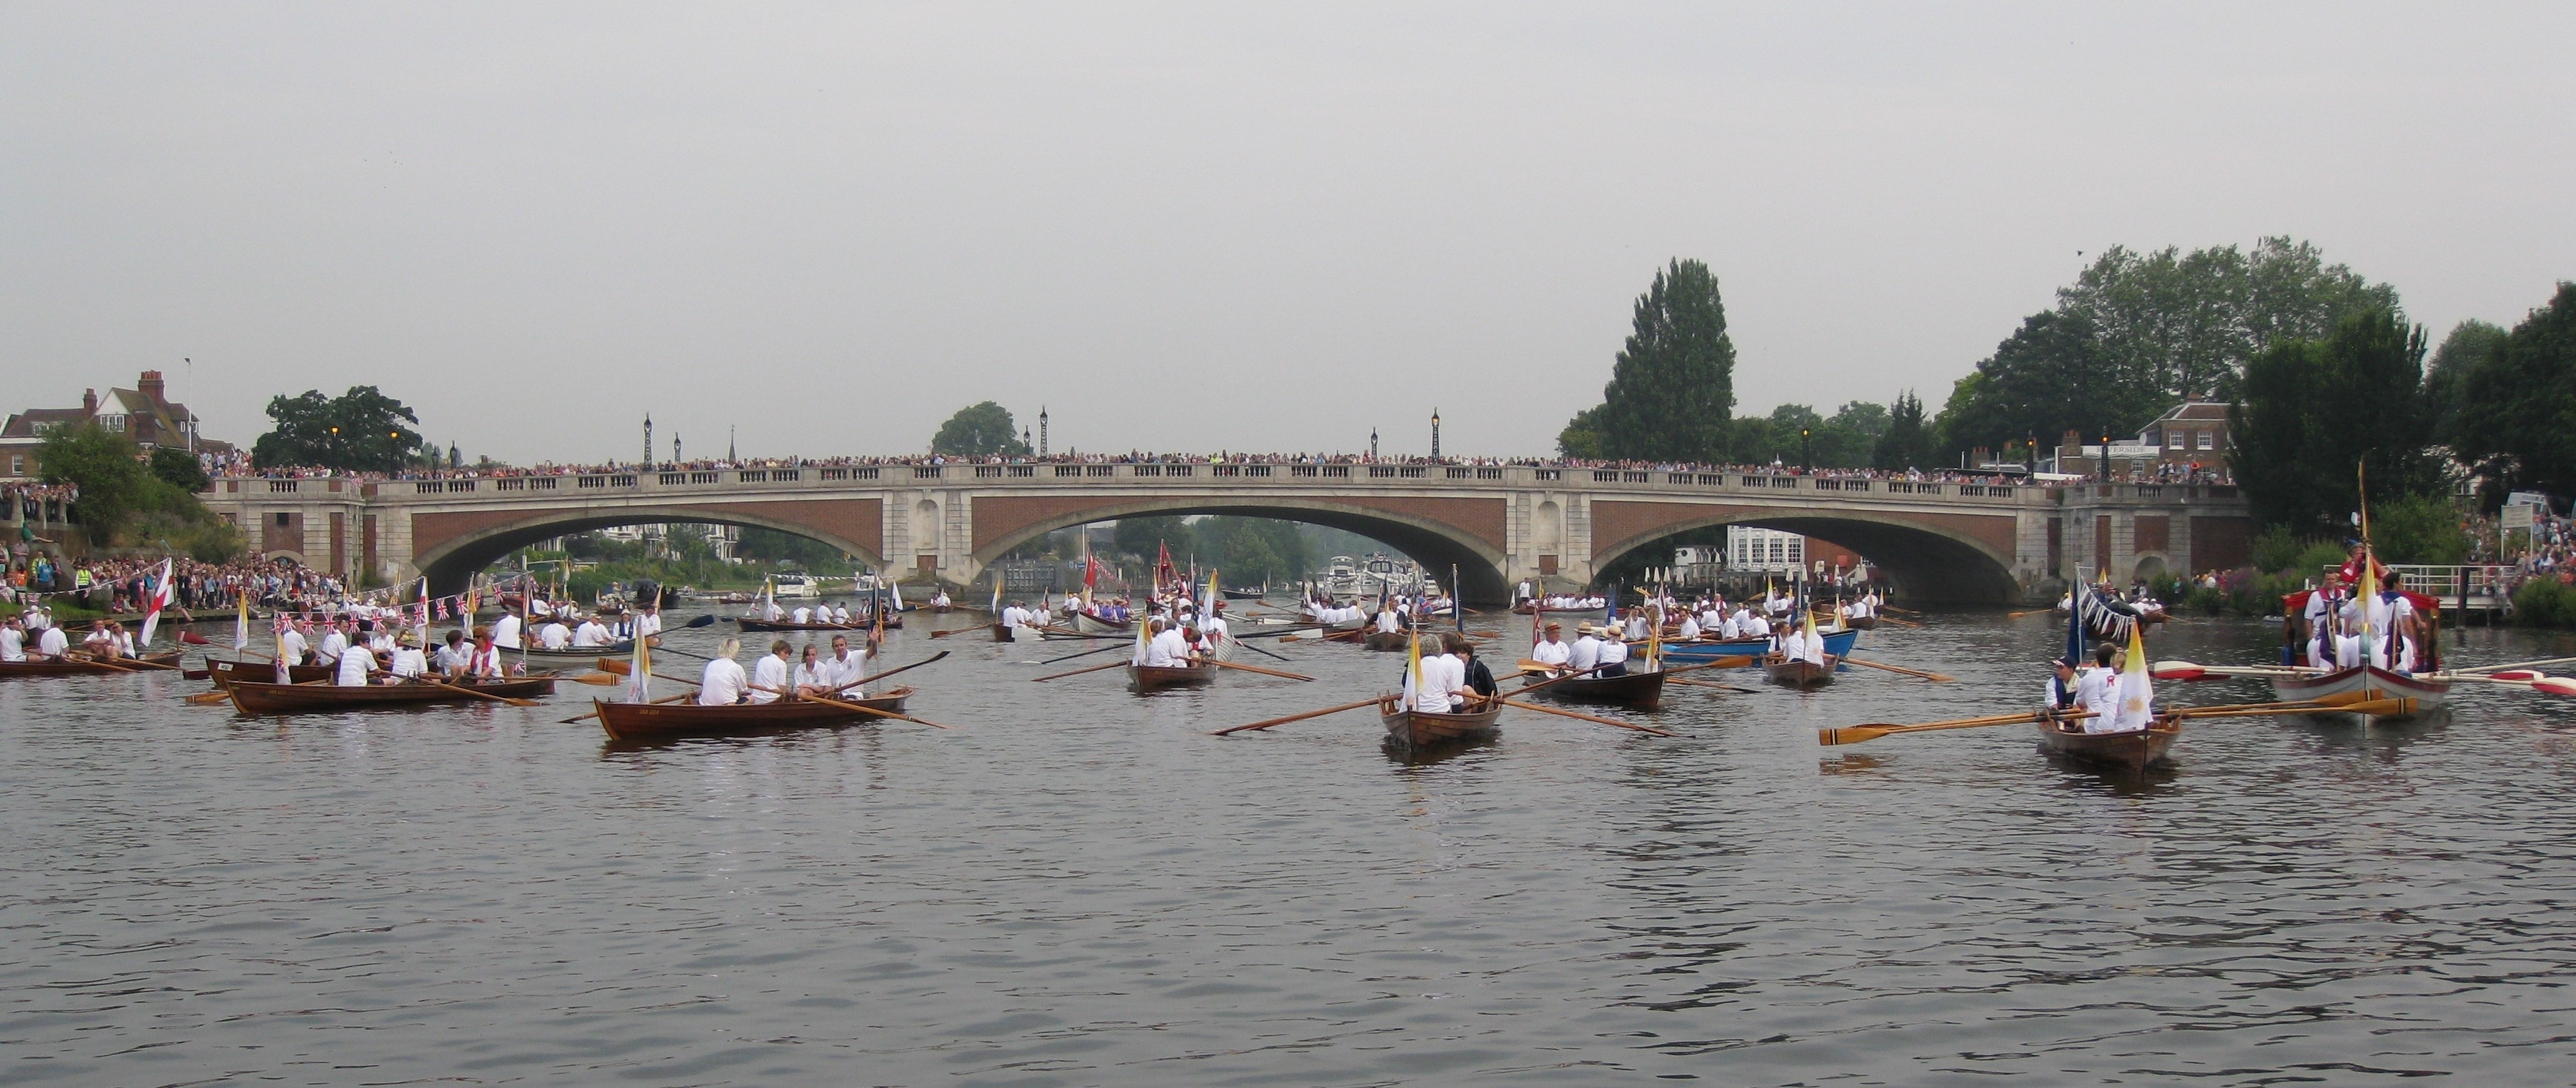 Flotilla 1 and Hampton Court Bridge crowds